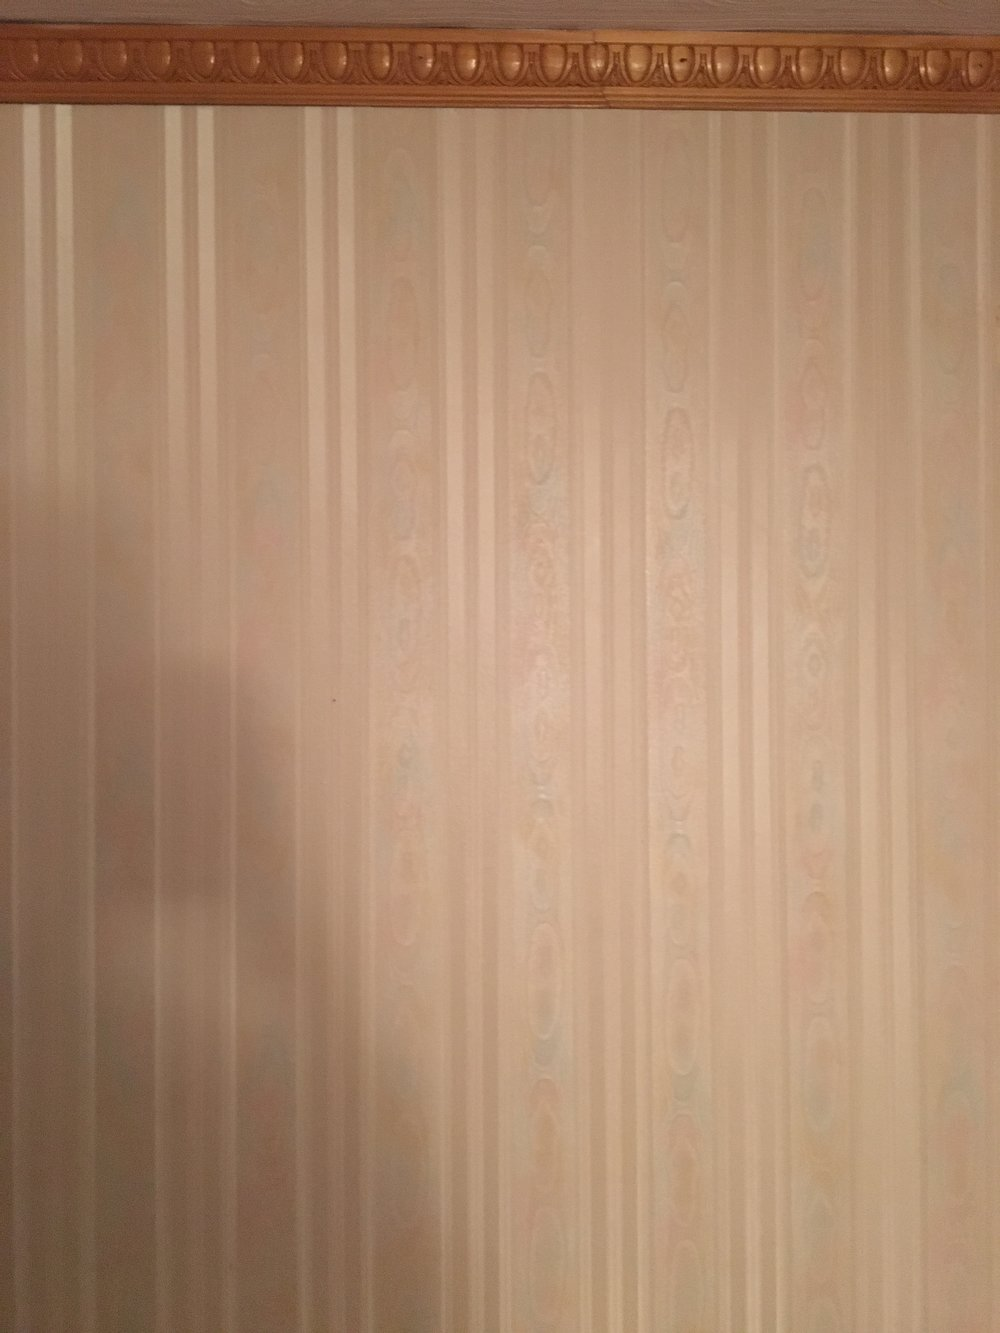 Ugly - This wallpaper still mocking me.